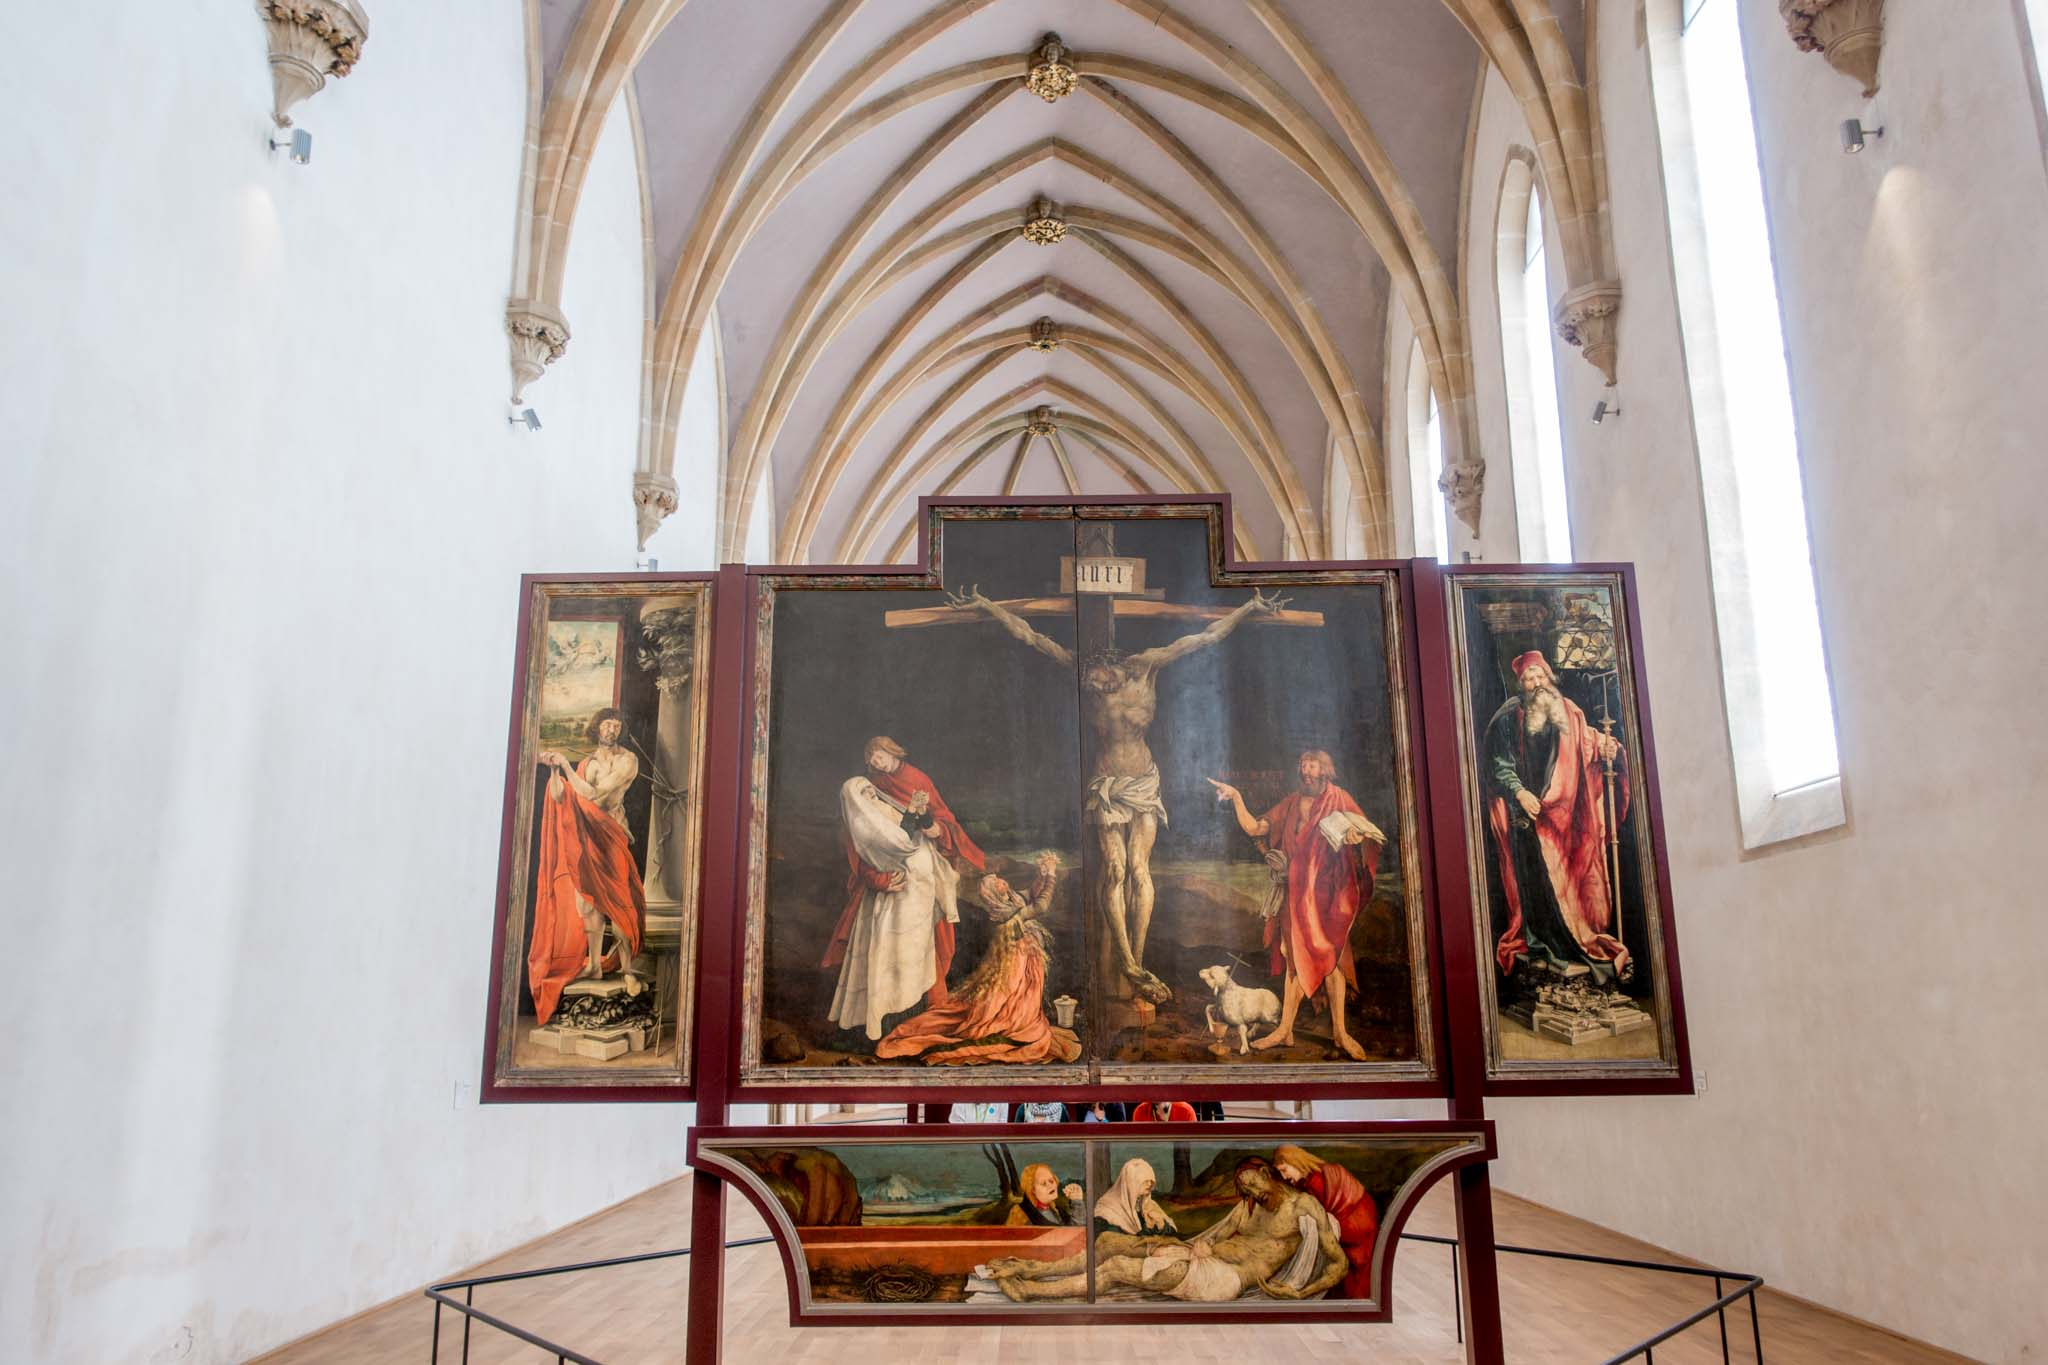 Painting of Jesus being crucified on display at the Unterlinden Museum